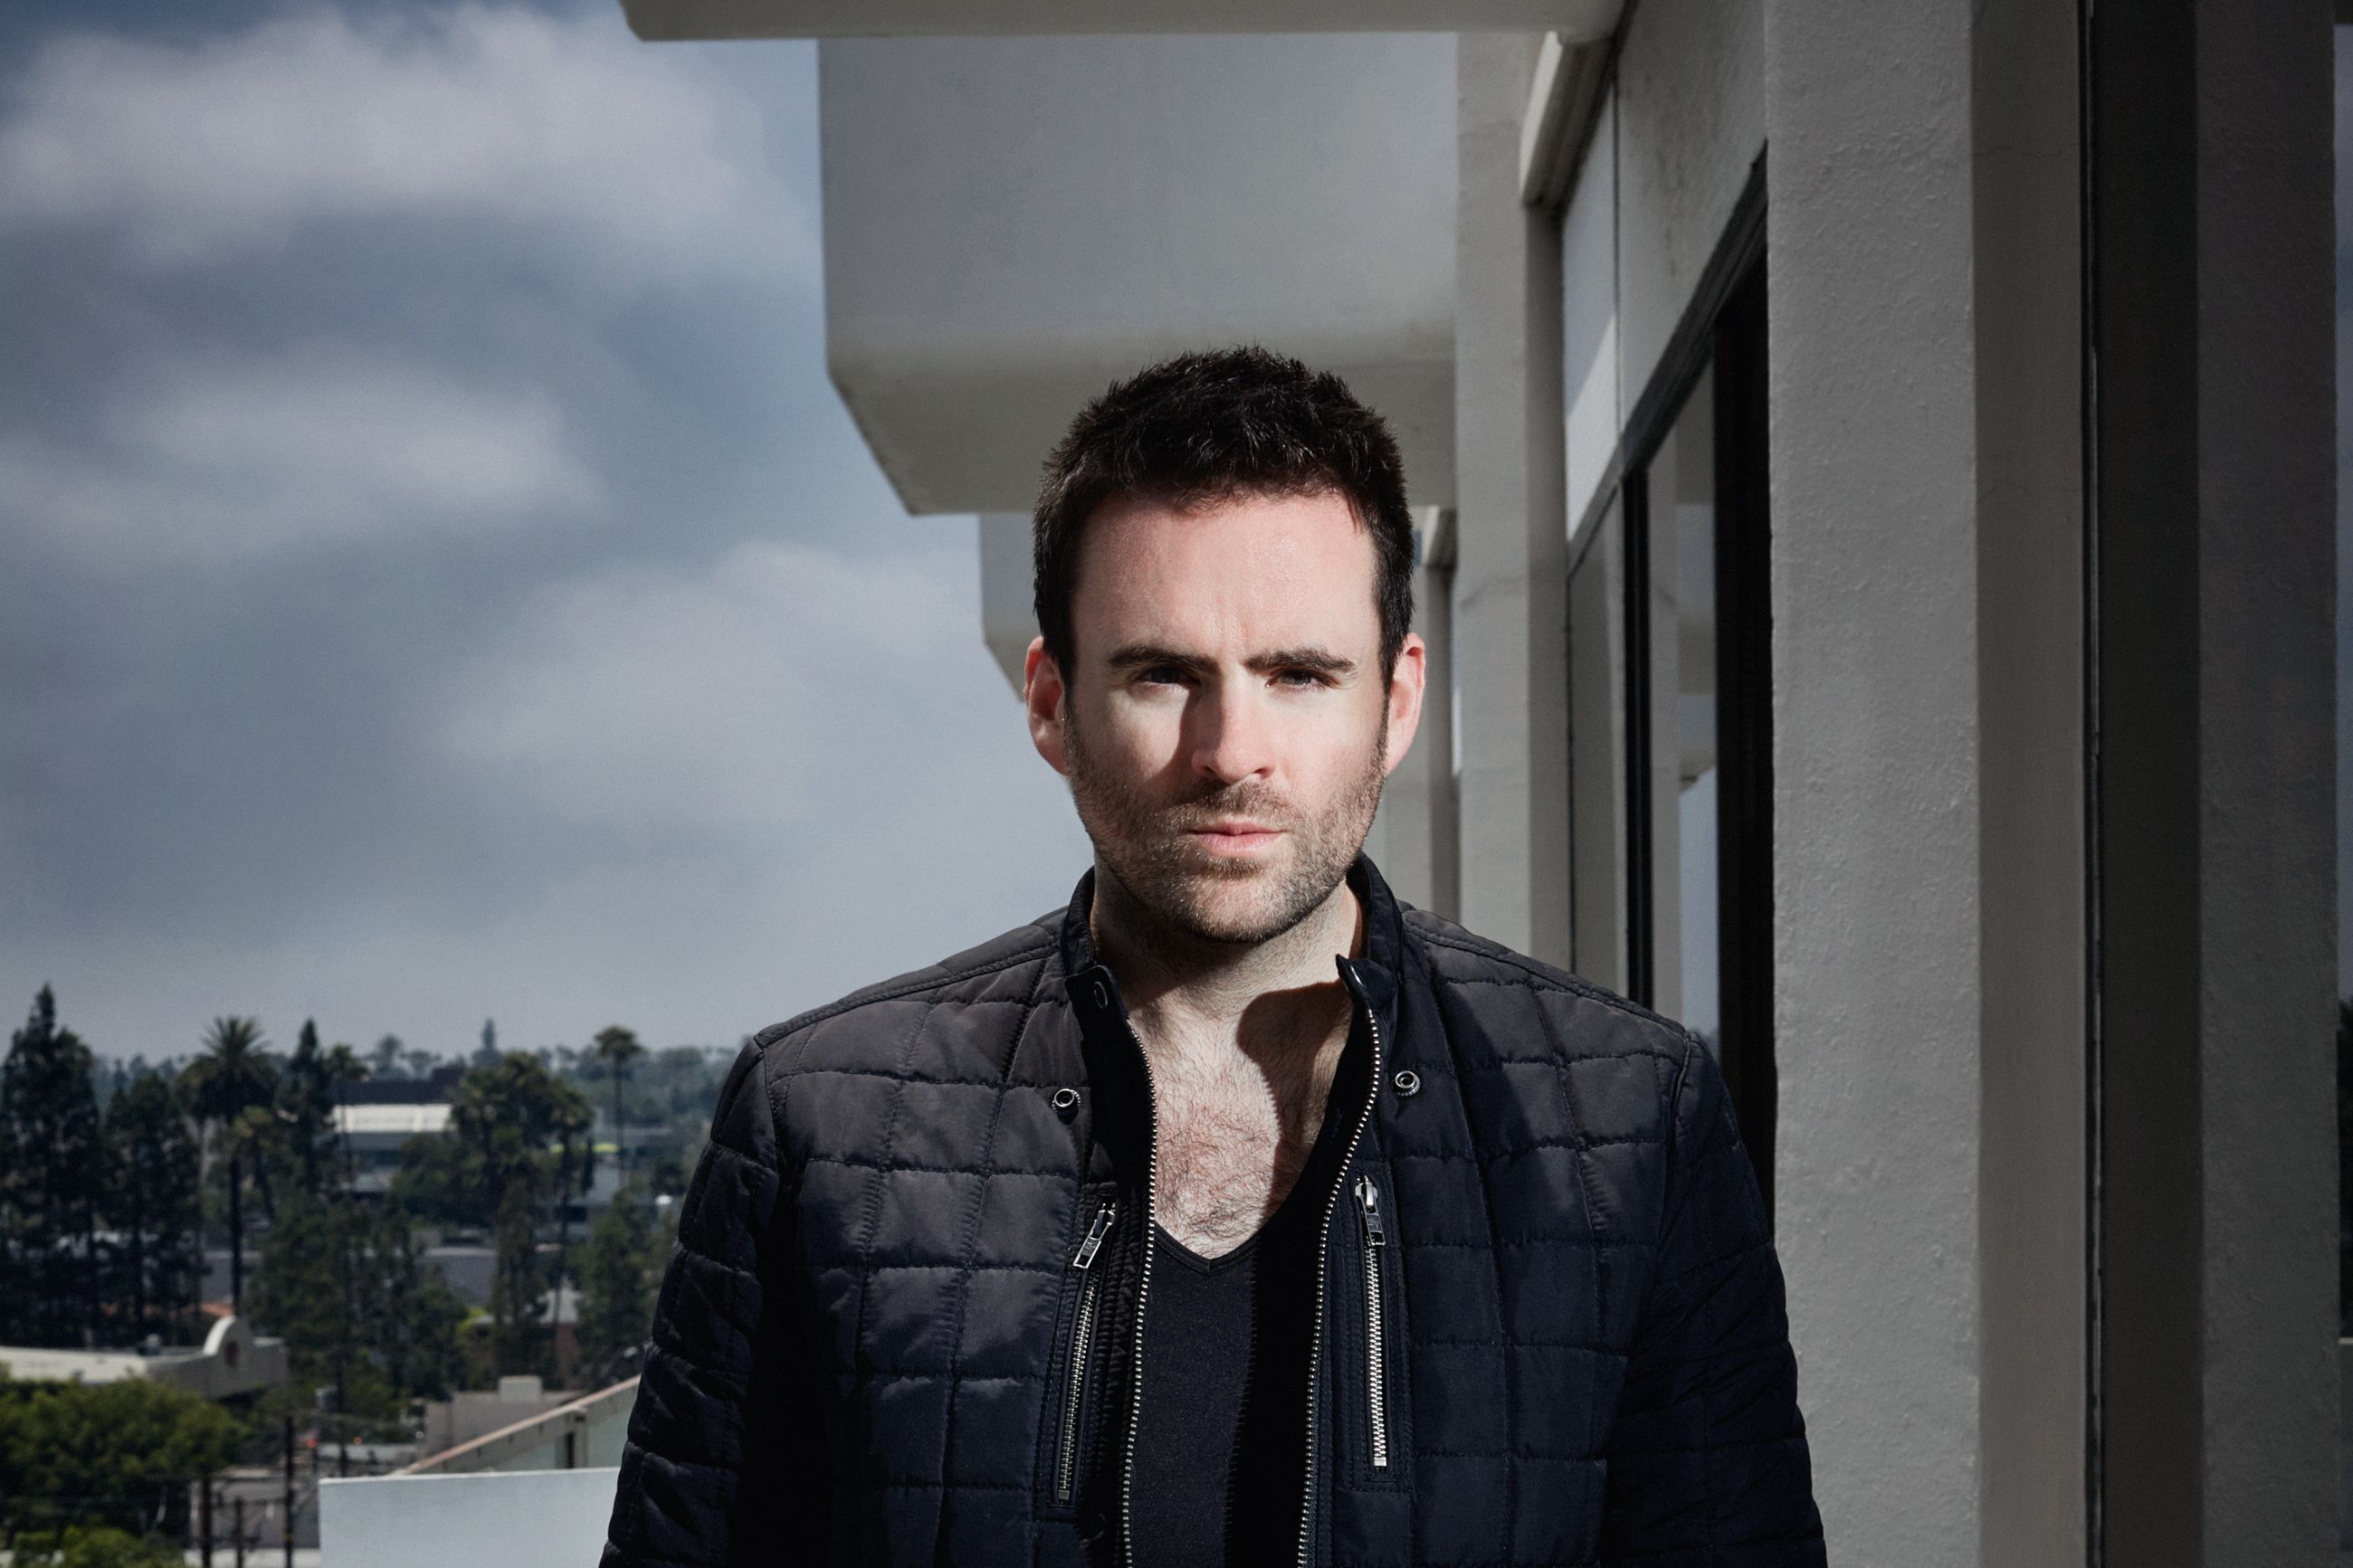 gareth emery dj wallpaper background hd 593